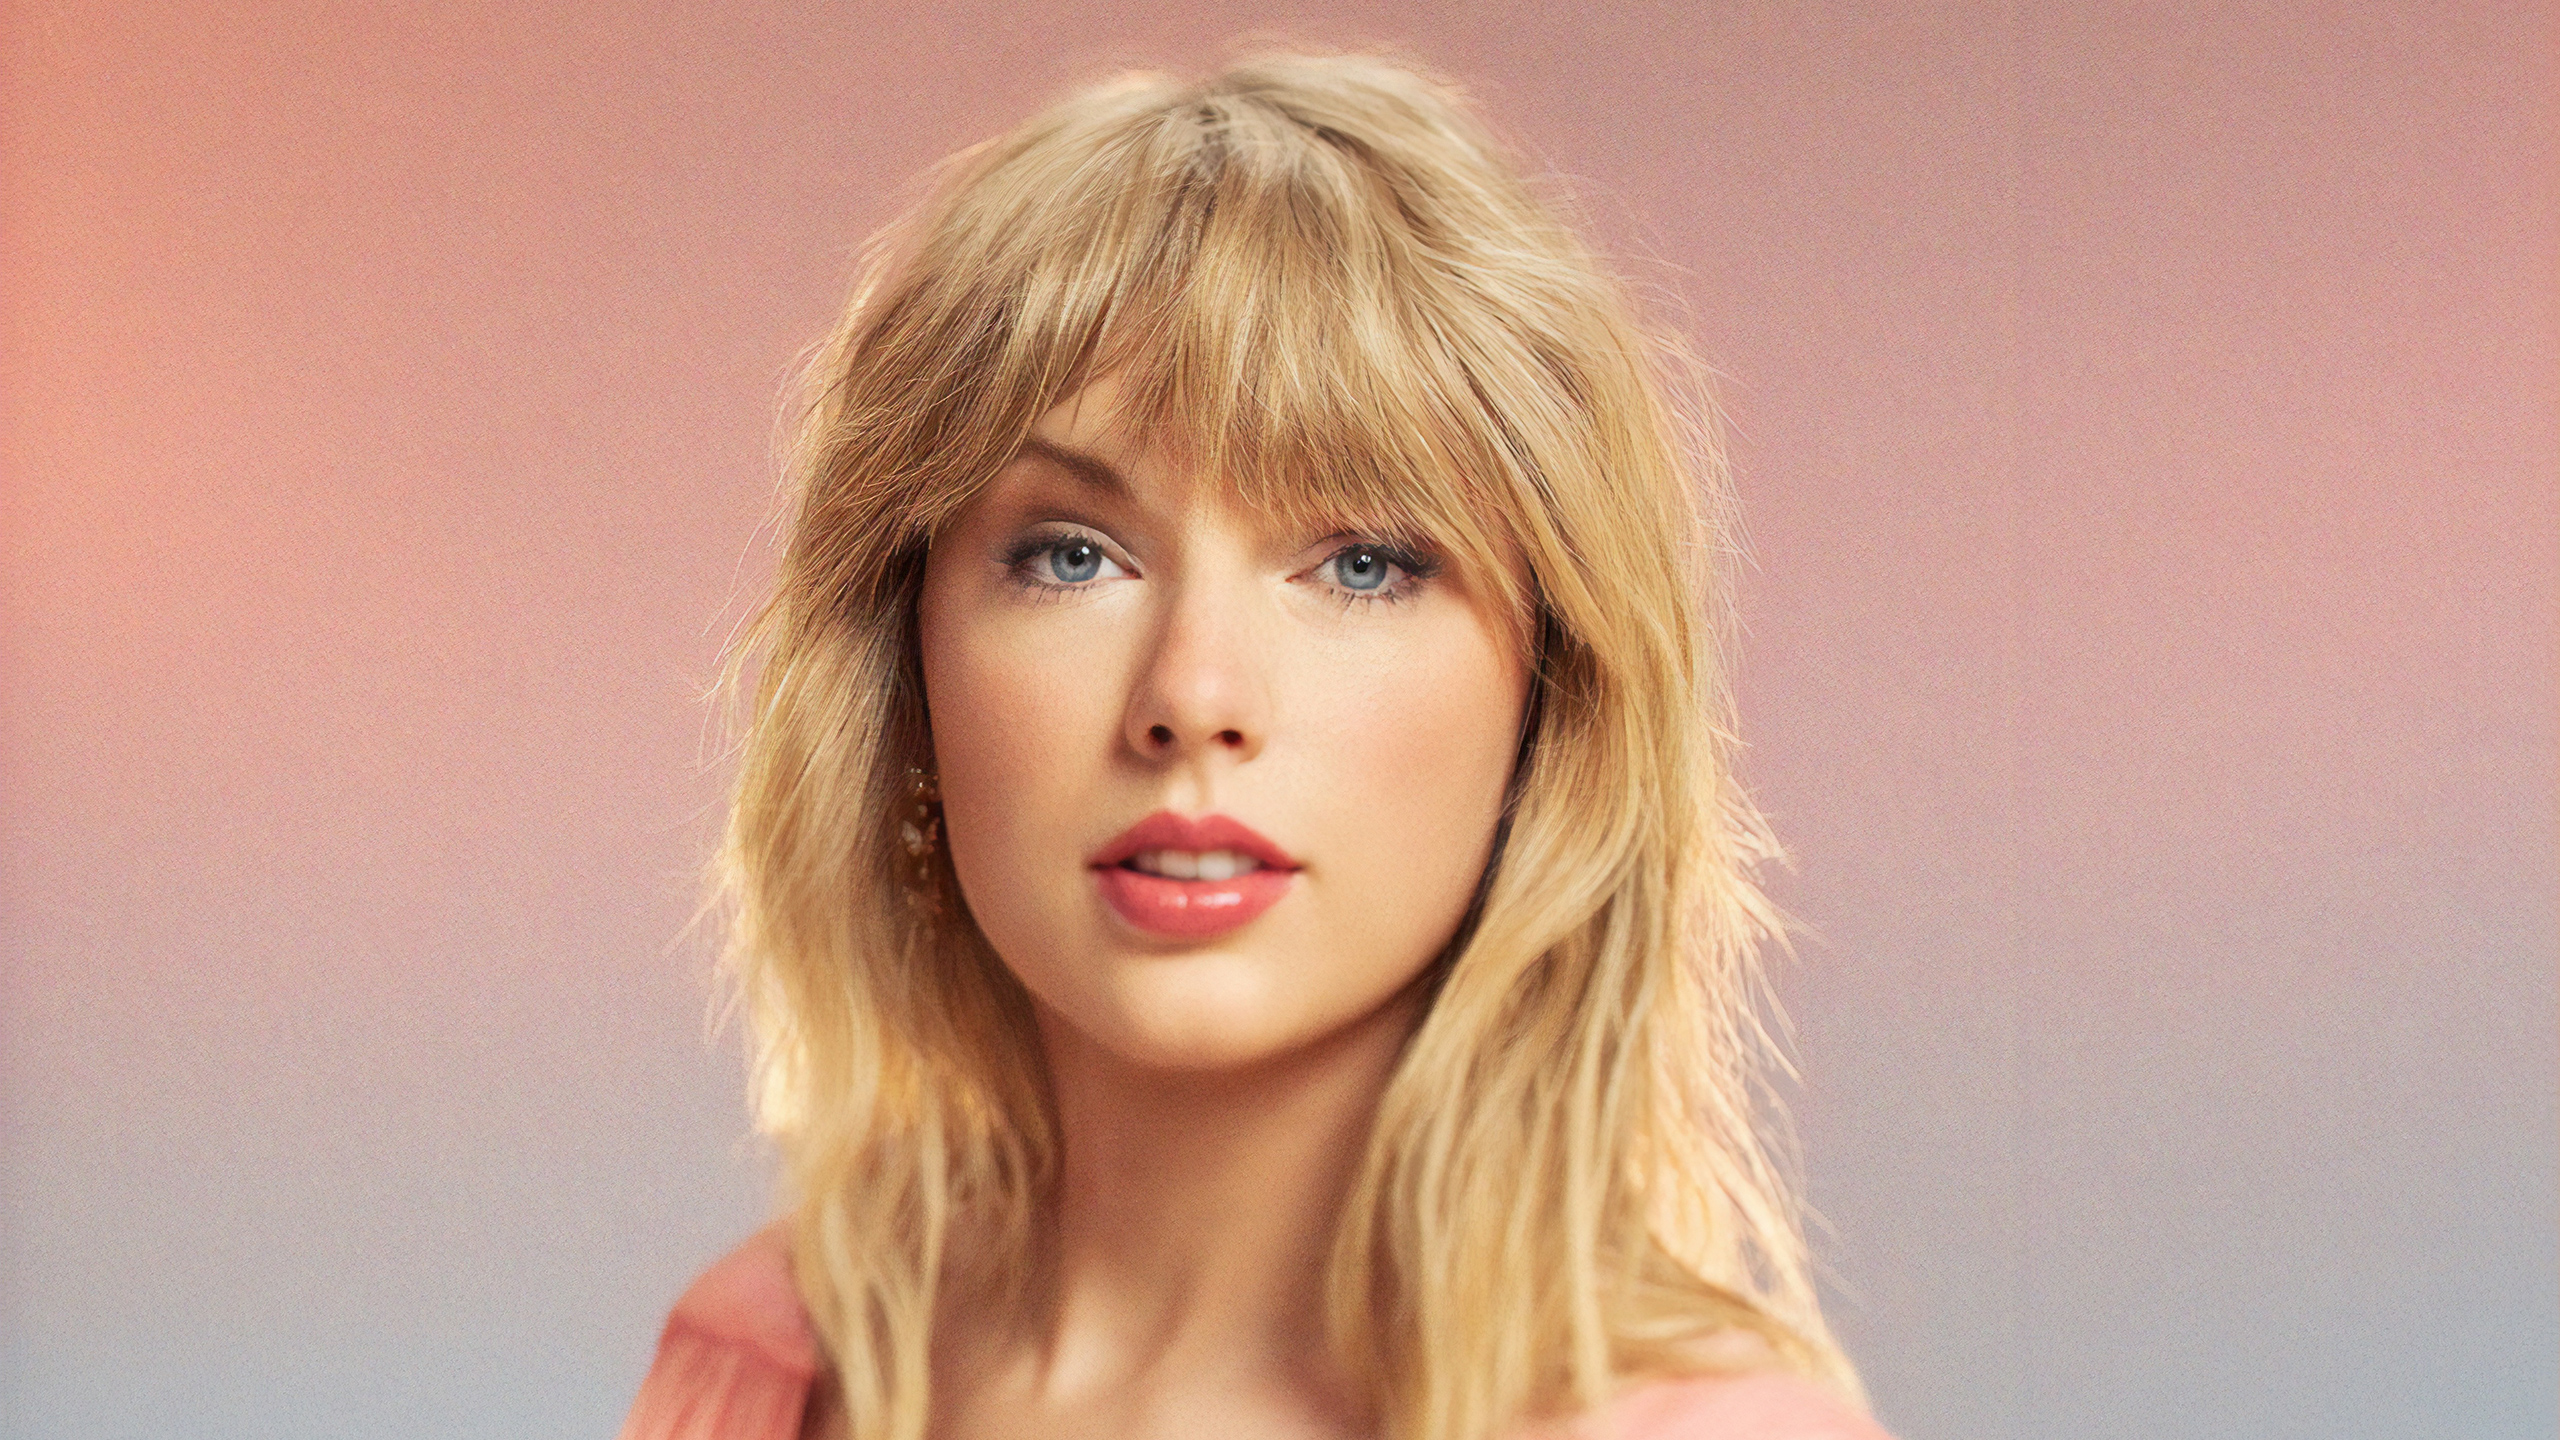 Taylor Swift For Time Magazine Photoshoot Hd Music 4k Wallpapers Images Backgrounds Photos And Pictures